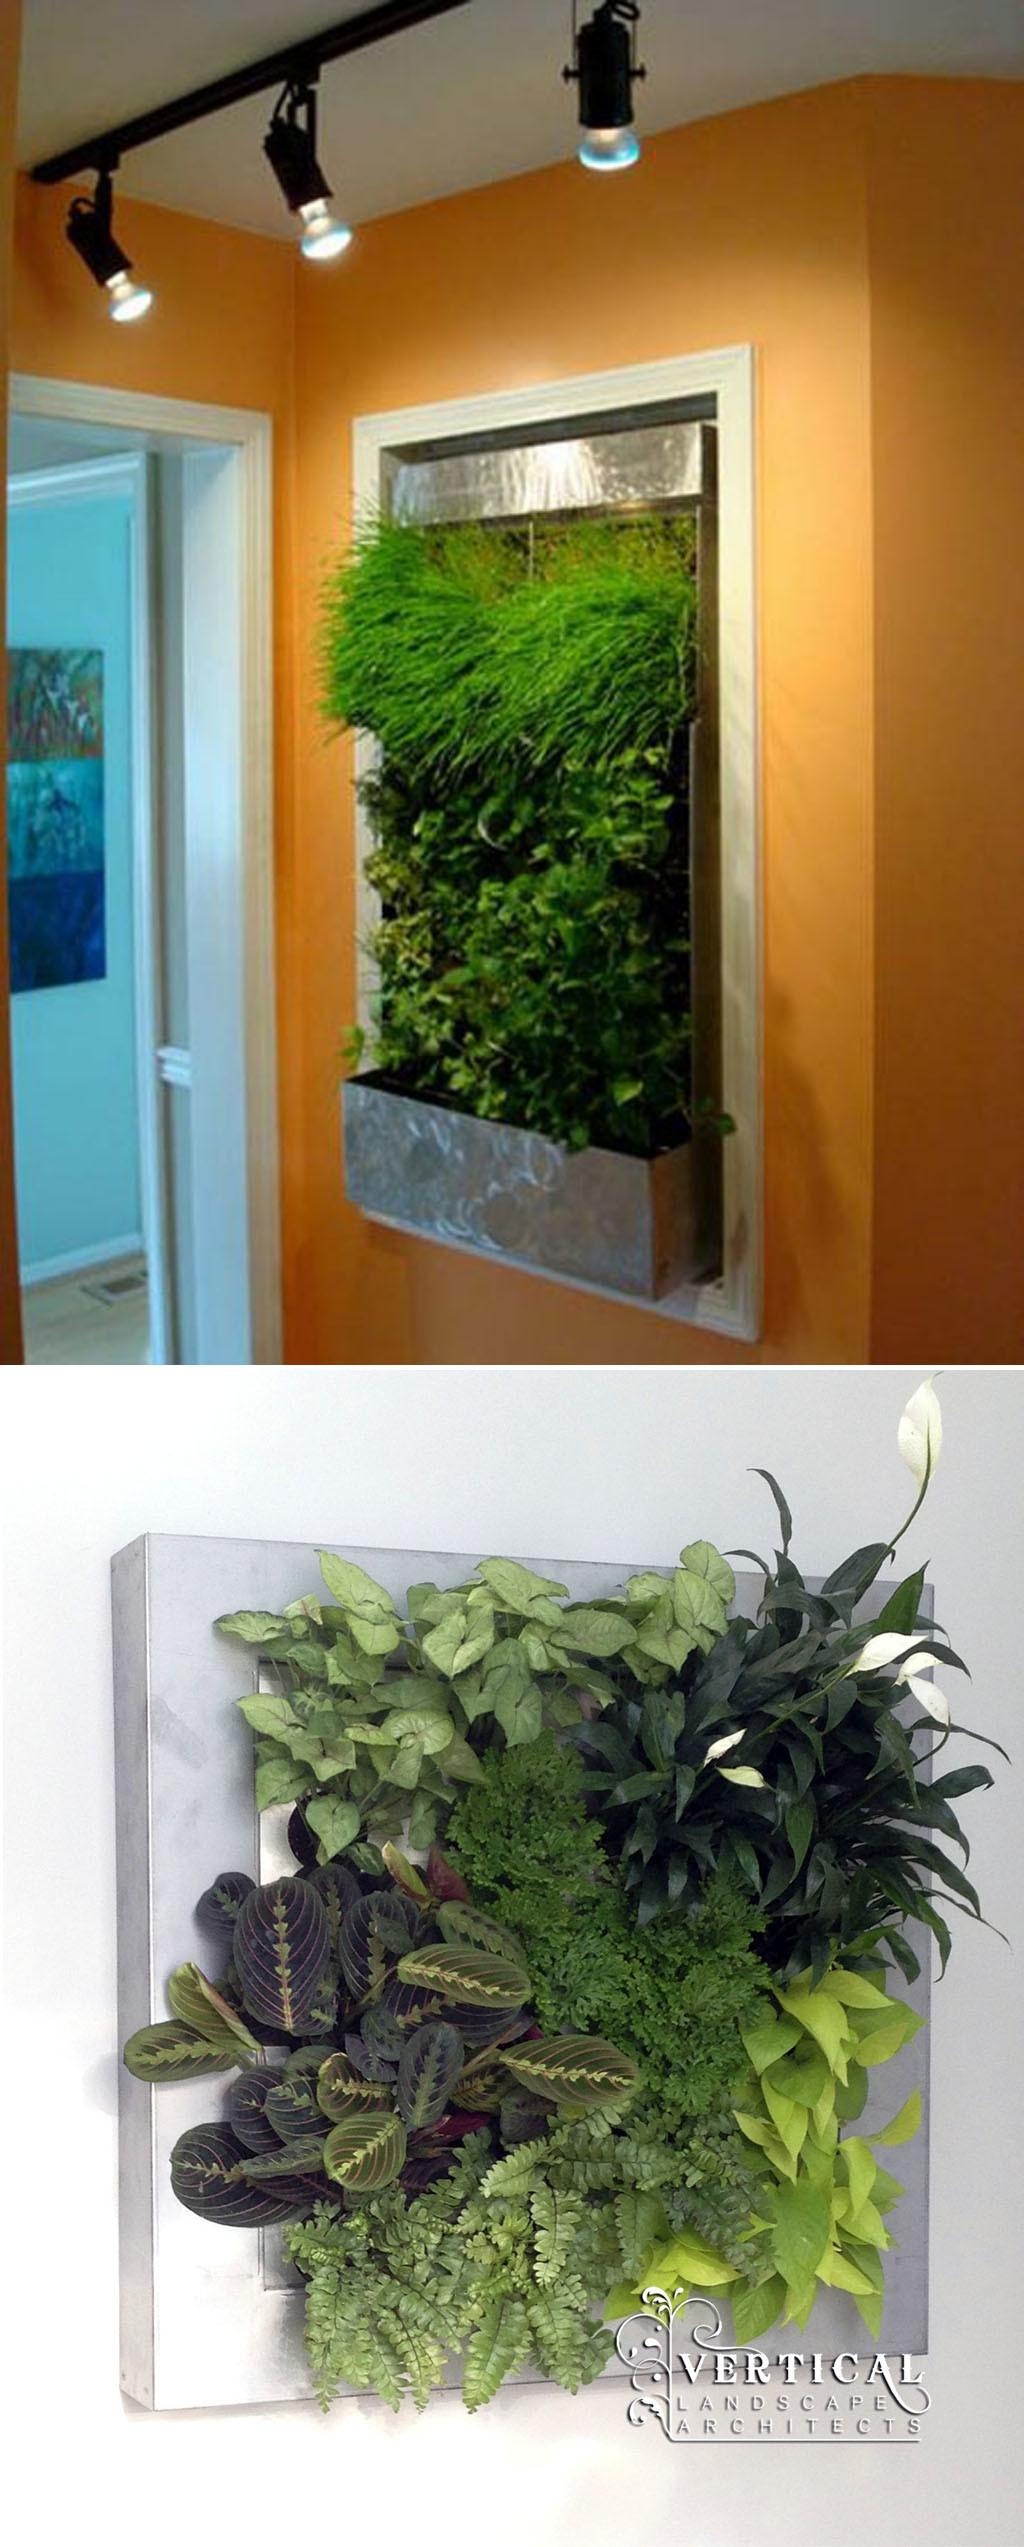 Green Walls Vertical Landscape Architects Small Indoor